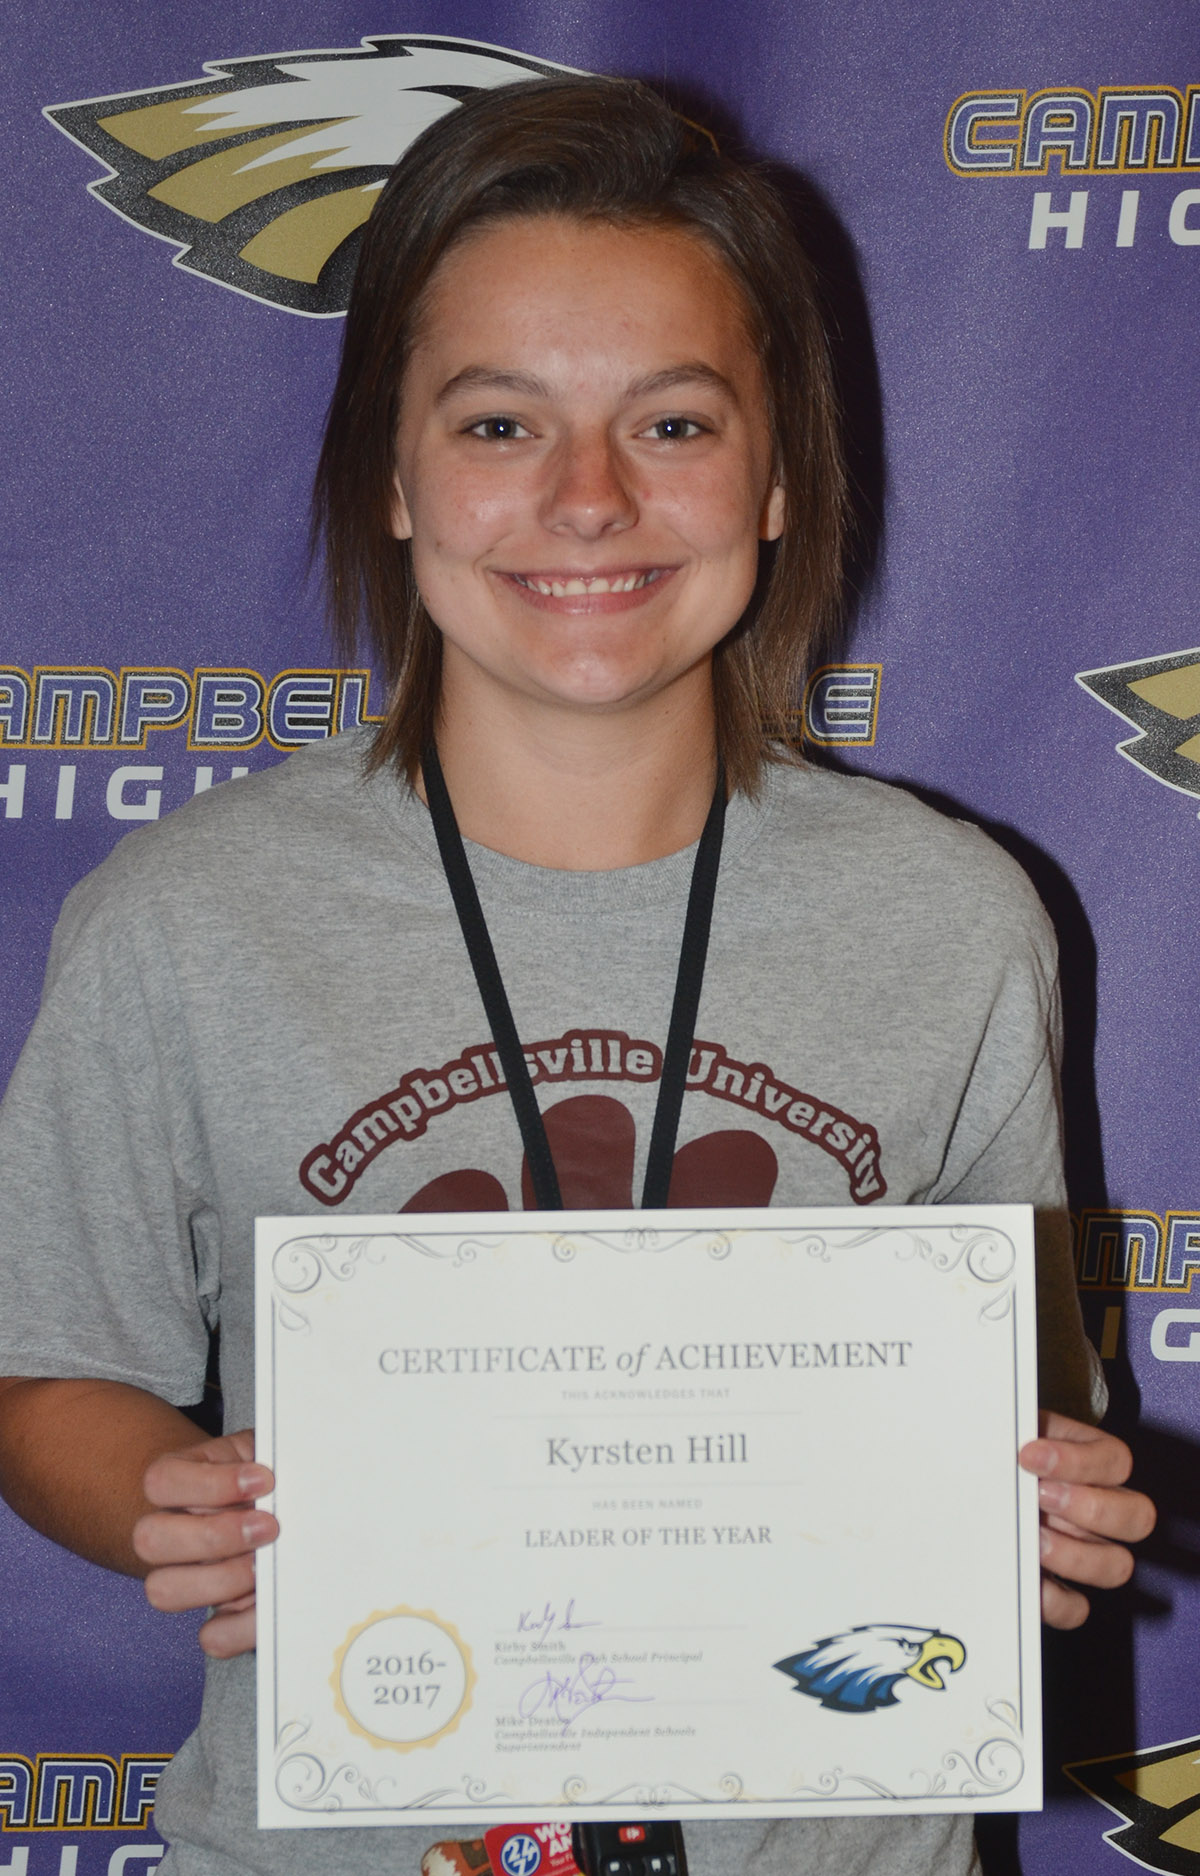 Kyrsten Hill was recently chosen as the Leader of the Year for the senior class in the 2016-2017 school year.